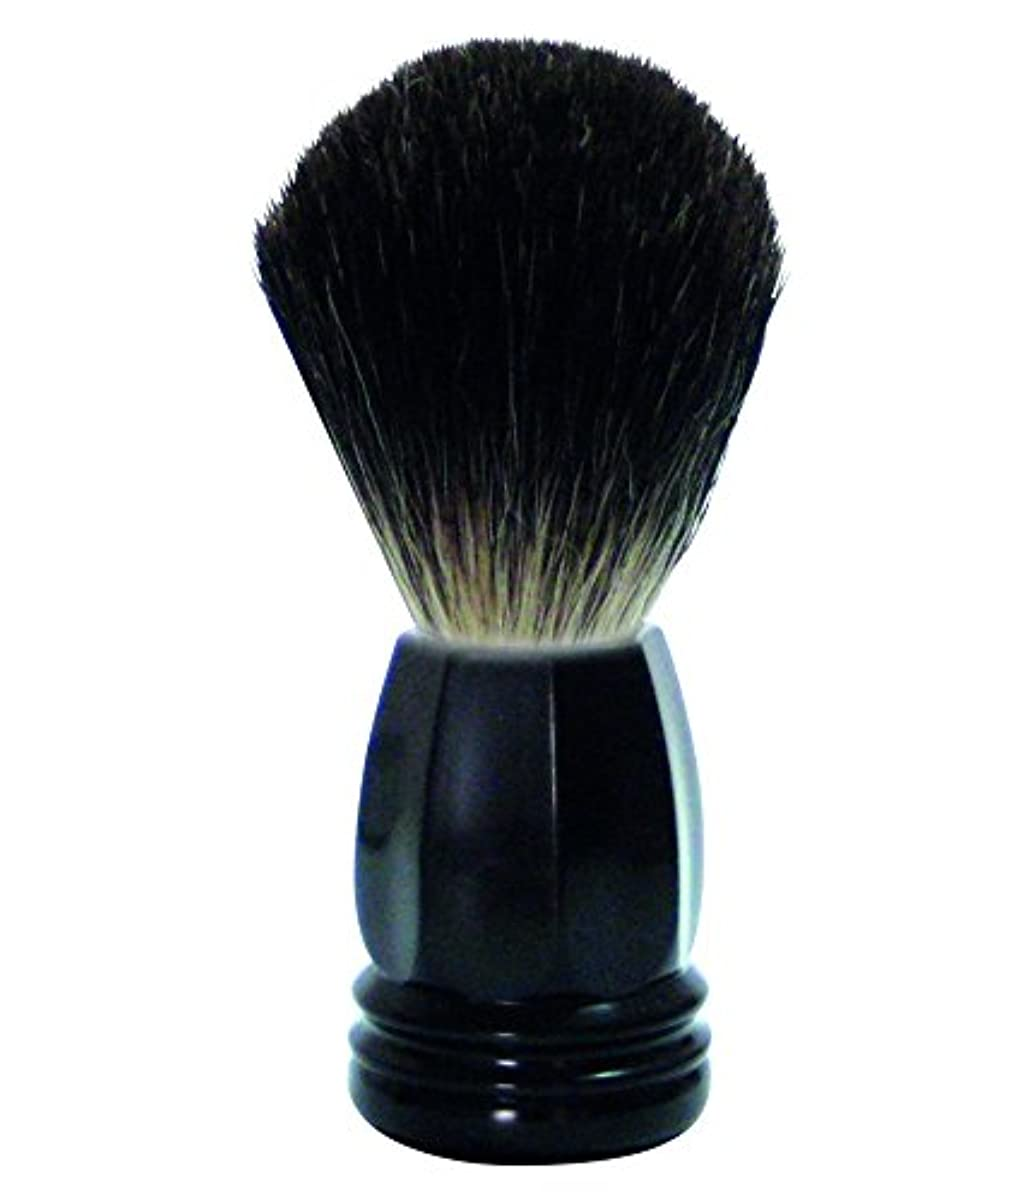 更新する用量識別GOLDDACHS Shaving Brush, 100% Badger hair, black polymer handle